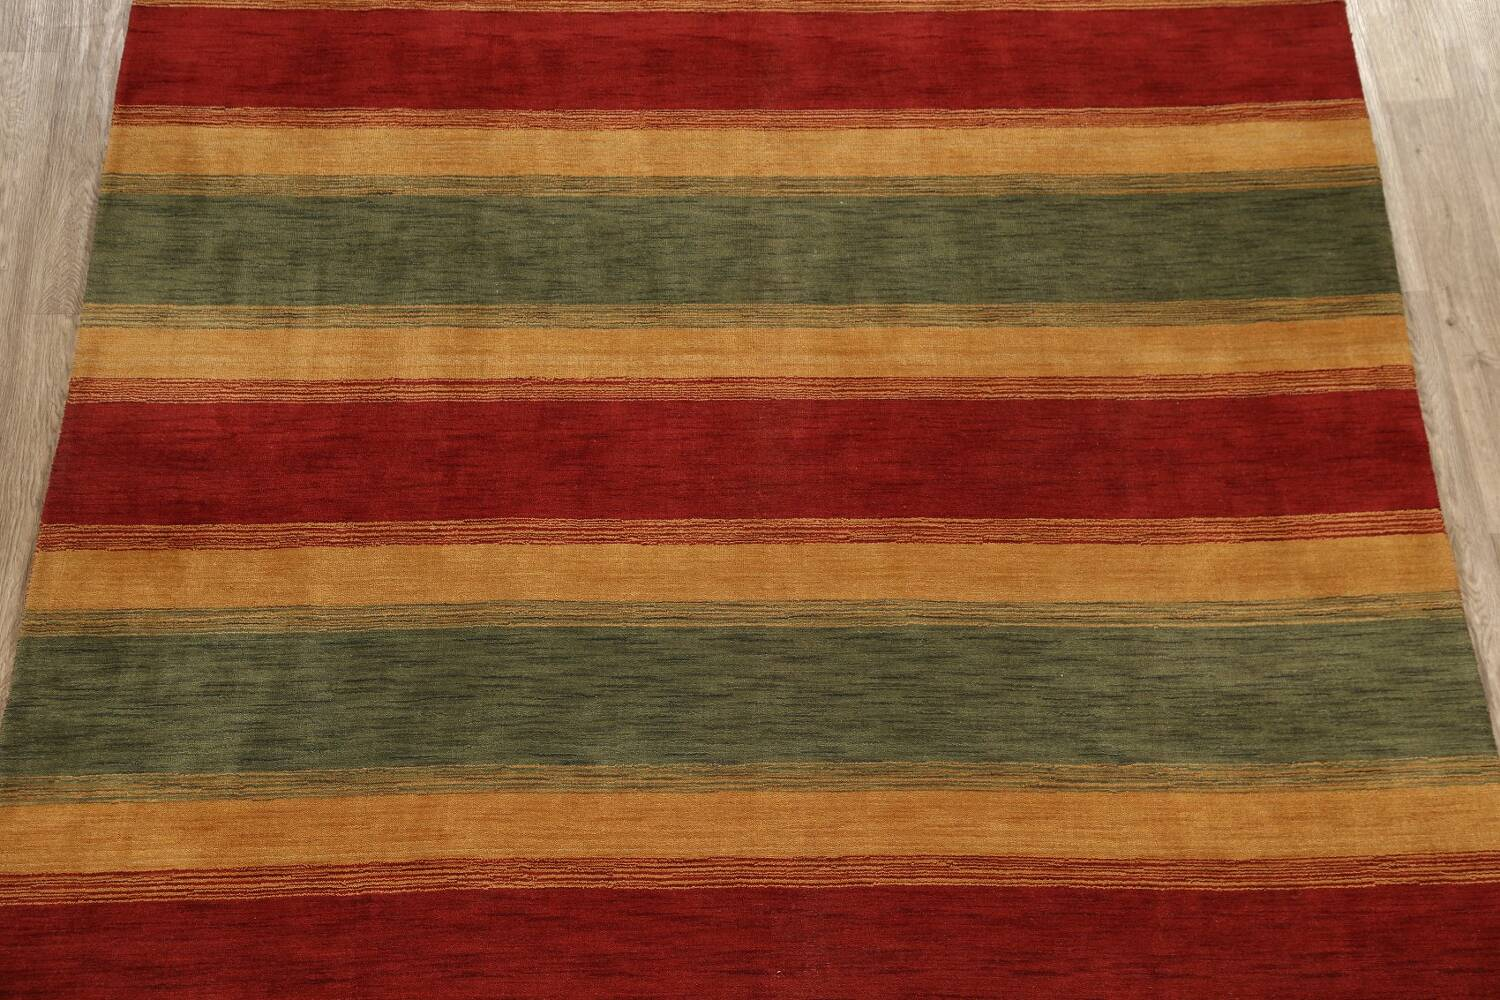 All-Over Striped Gabbeh Oriental Area Rug 9x12 image 3